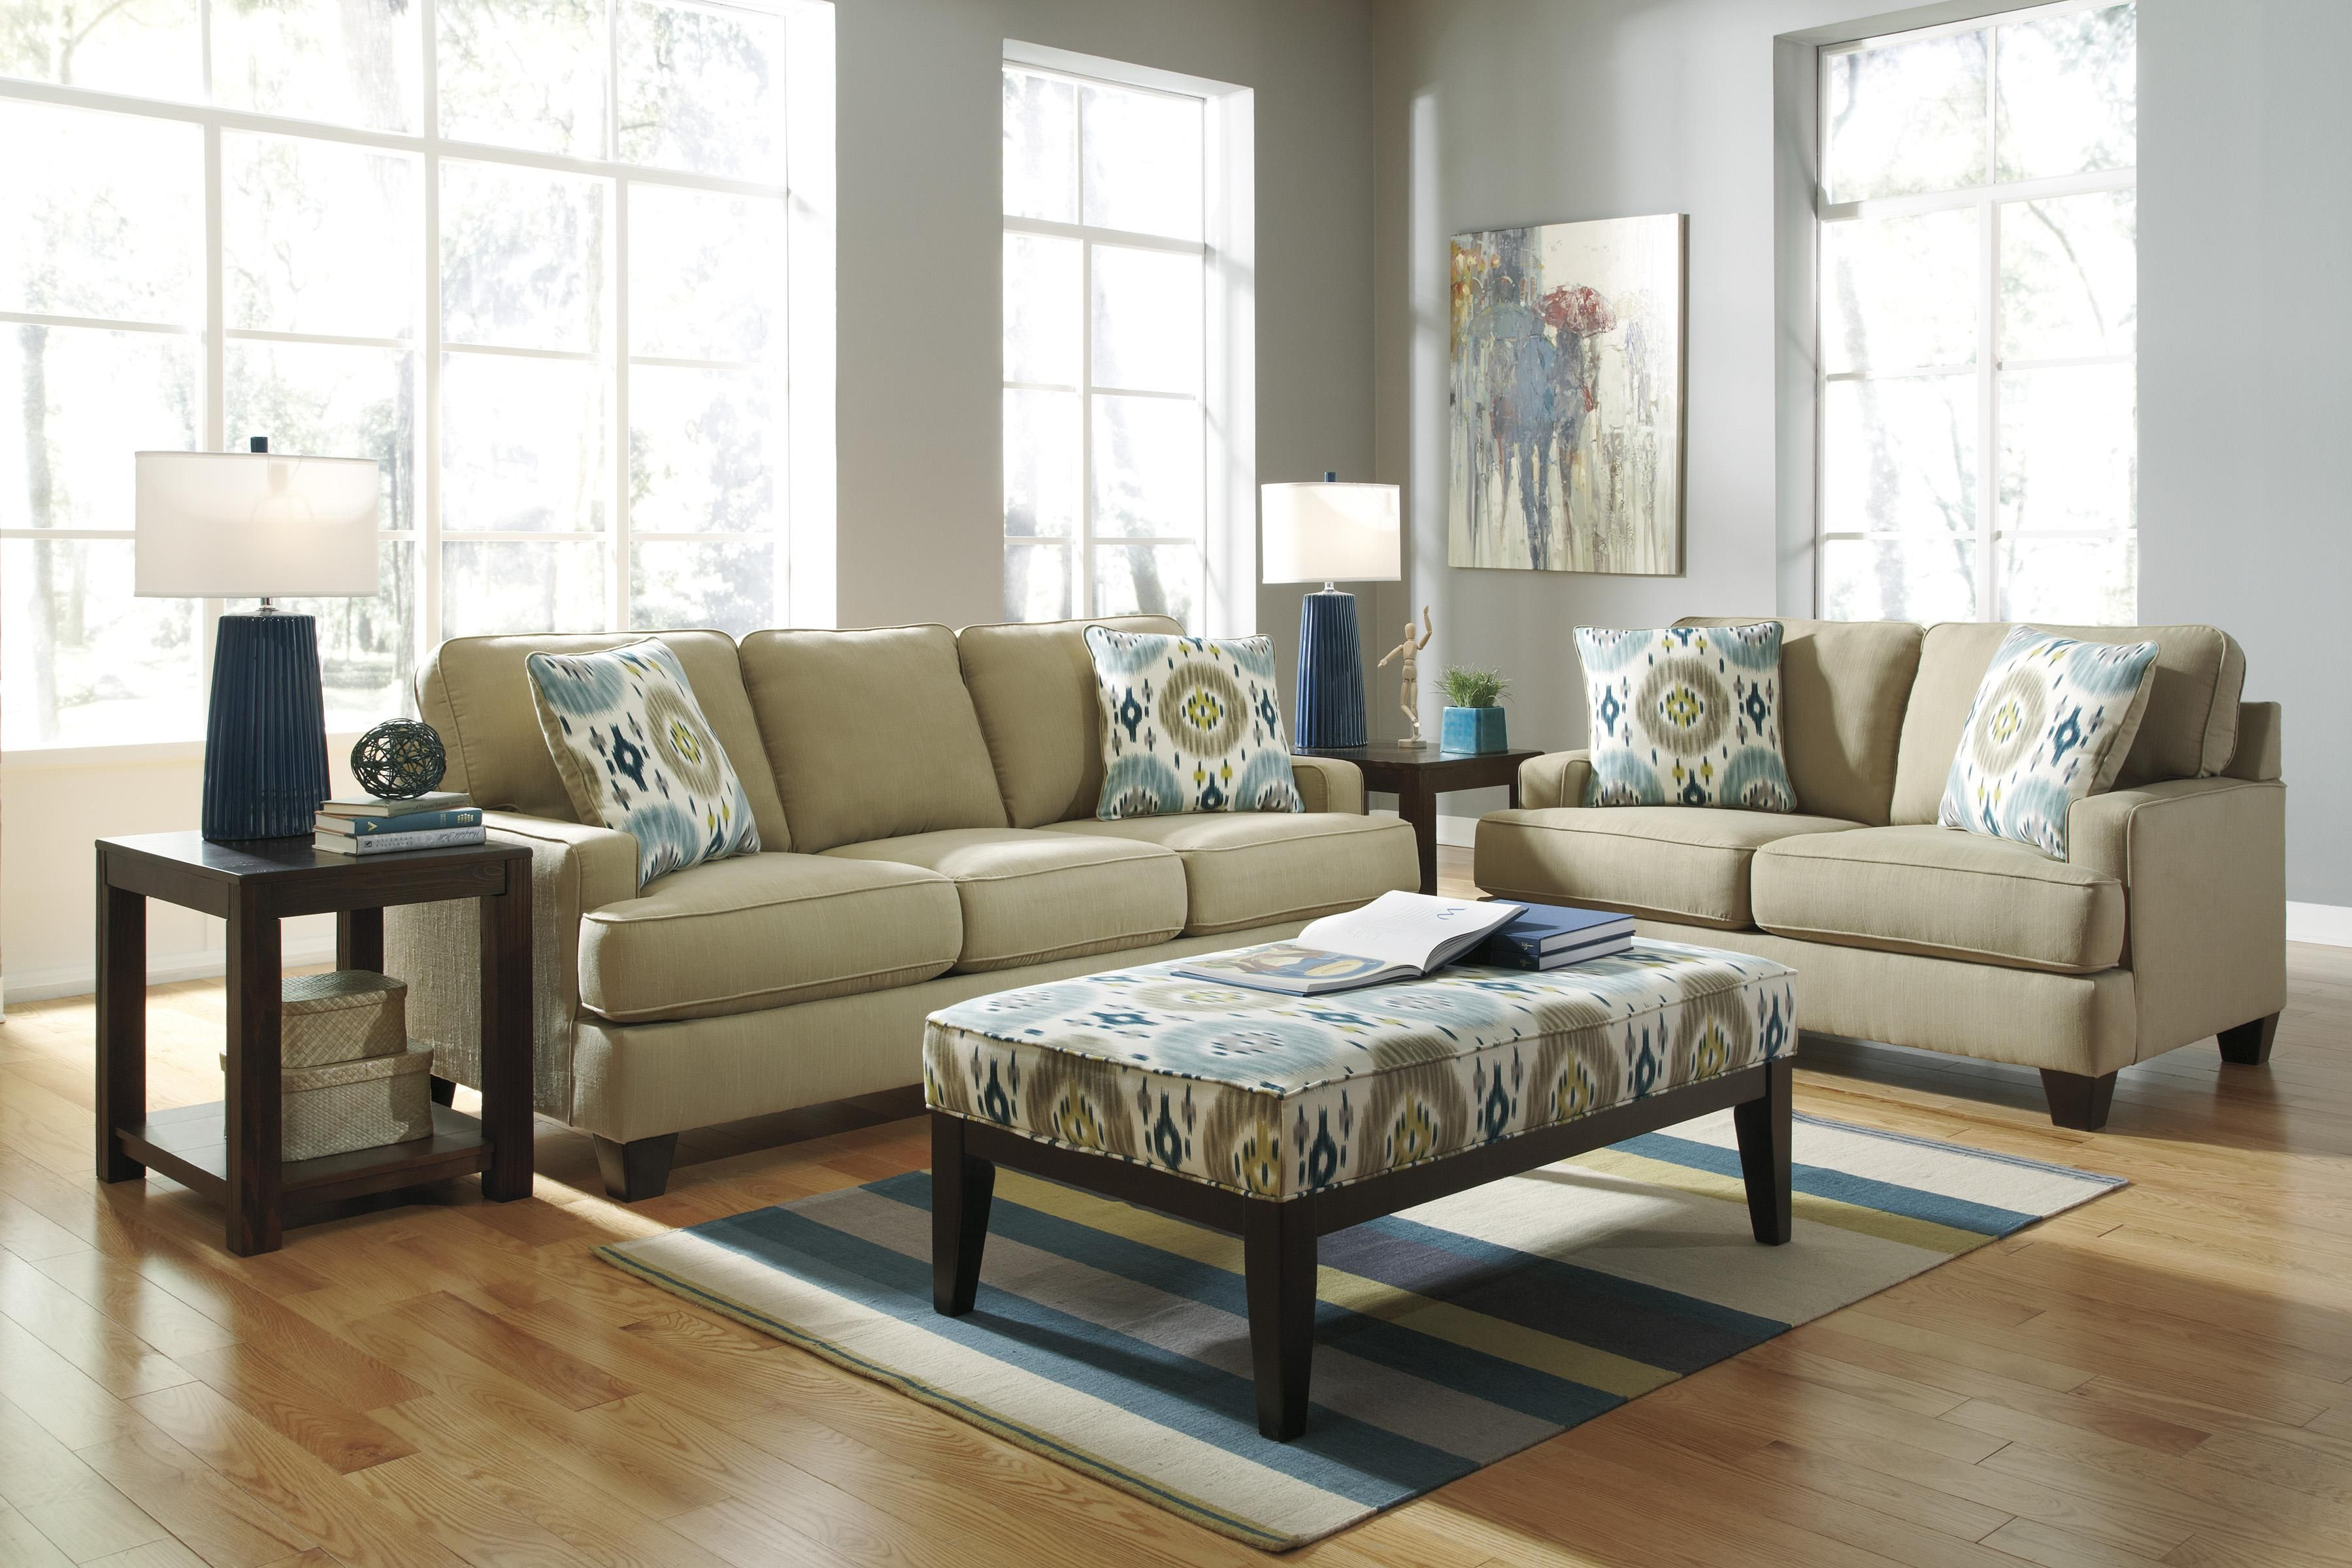 Simmons Roselyn collection Sofa s Pinterest